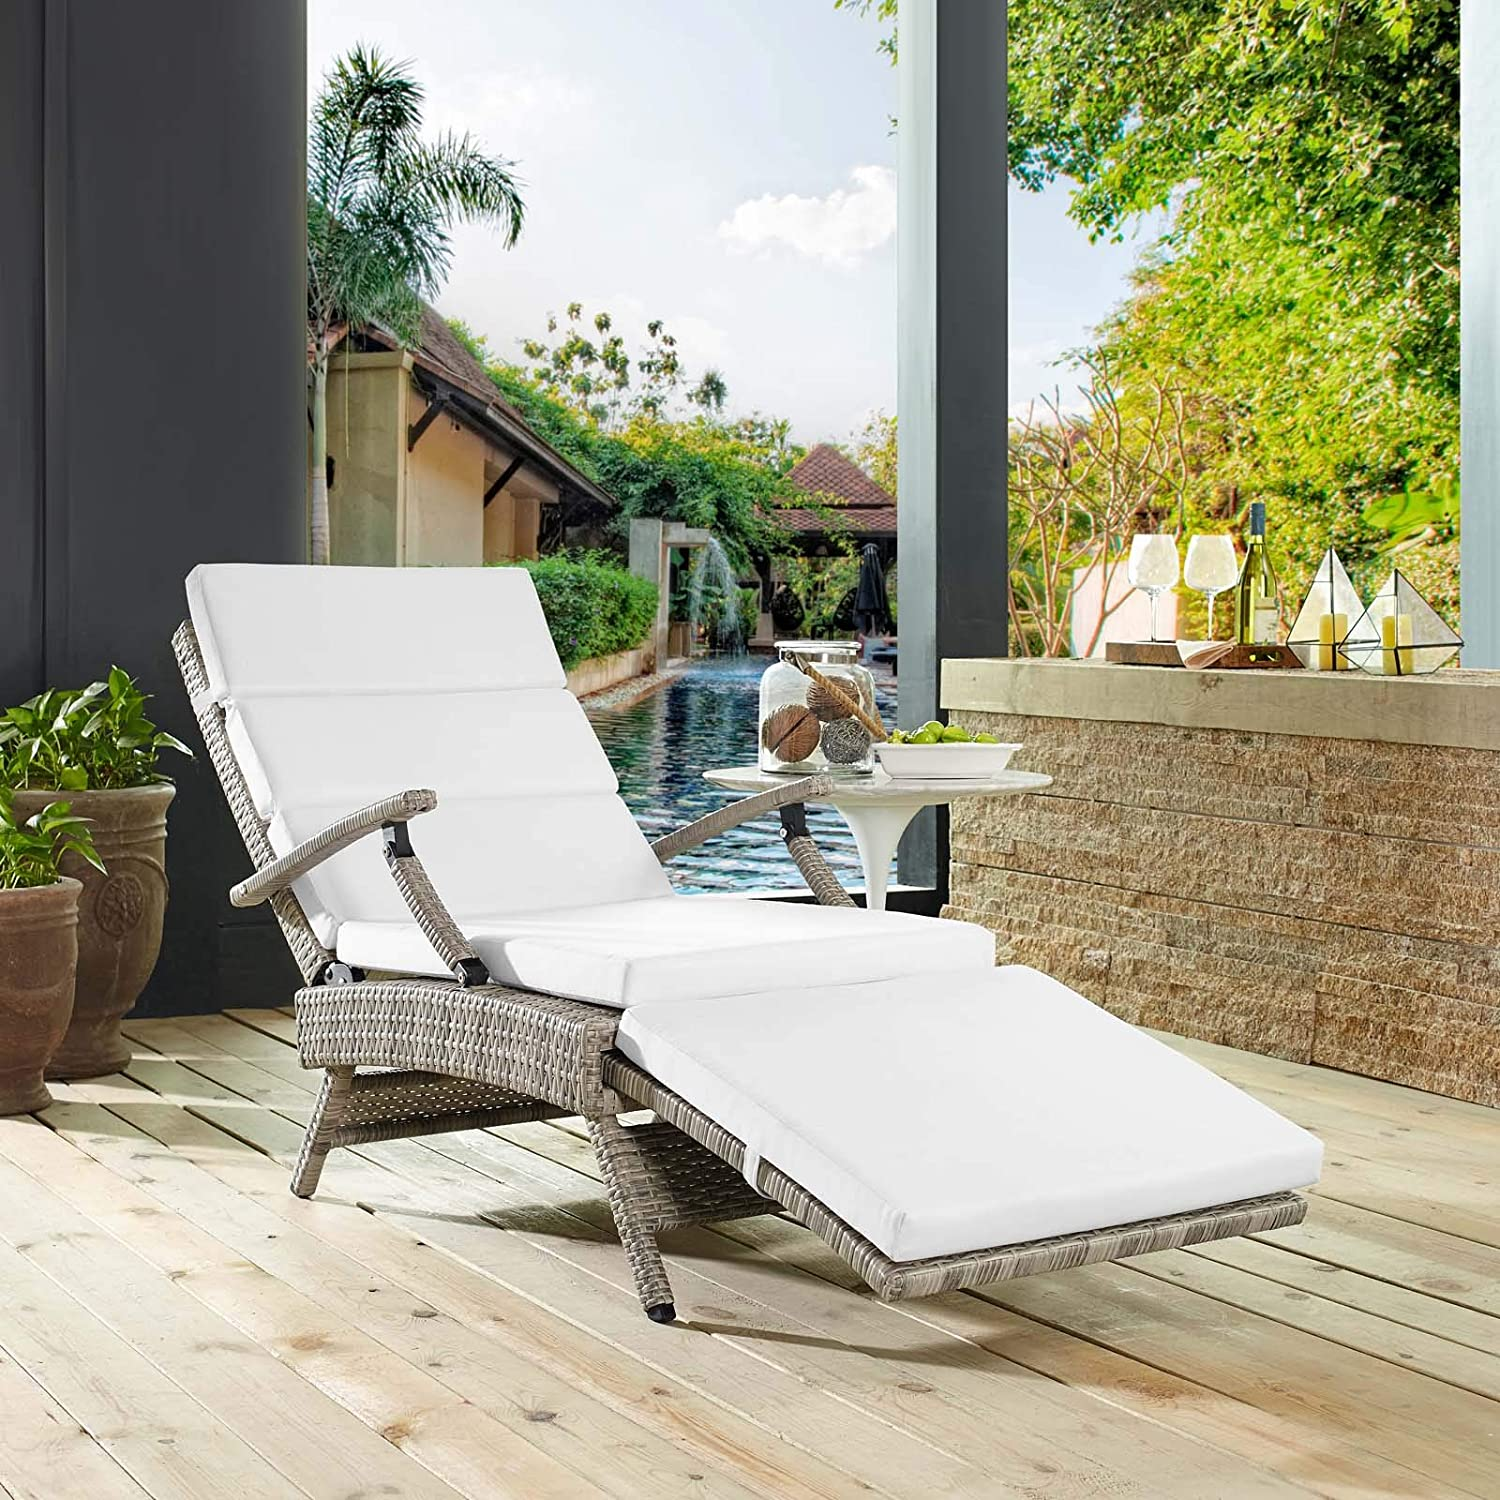 Modway Envisage Outdoor Patio Wicker Rattan Chaise Lounge in Light Gray White